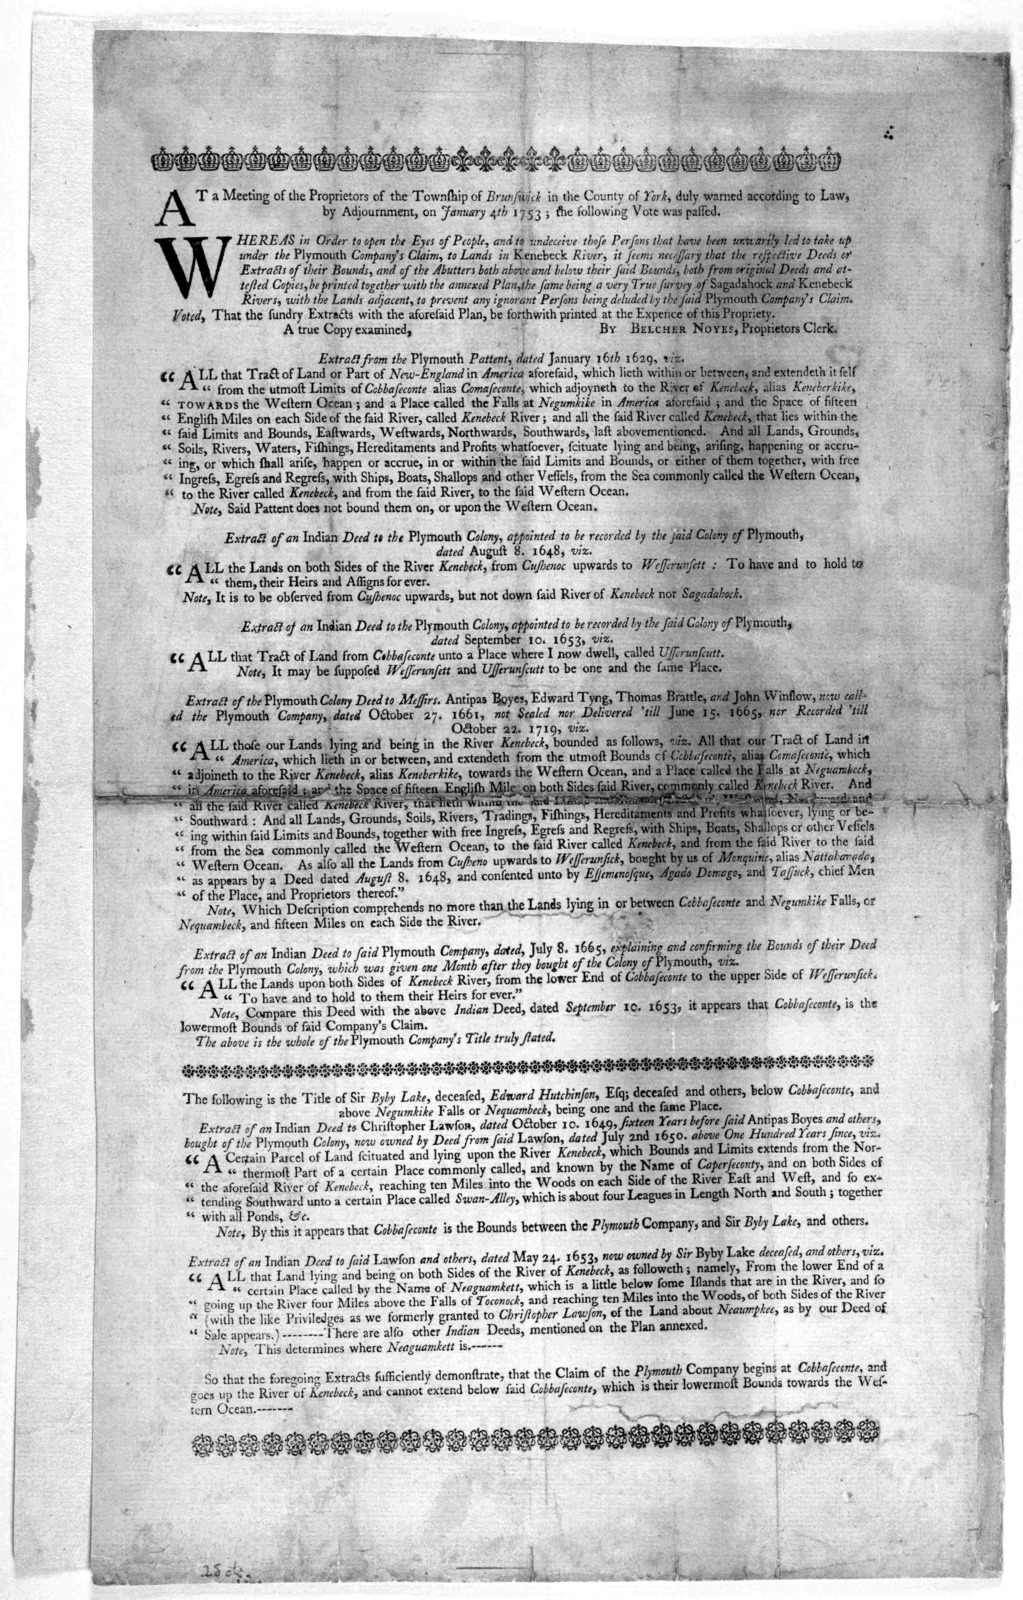 At a meeting of the proprietors of the Township of Brunswick in the County of York, duly warned according to law by adjournment, on January 4th, 1753 the following vote was passed. [regarding Plymouth Company's claims] [1753].